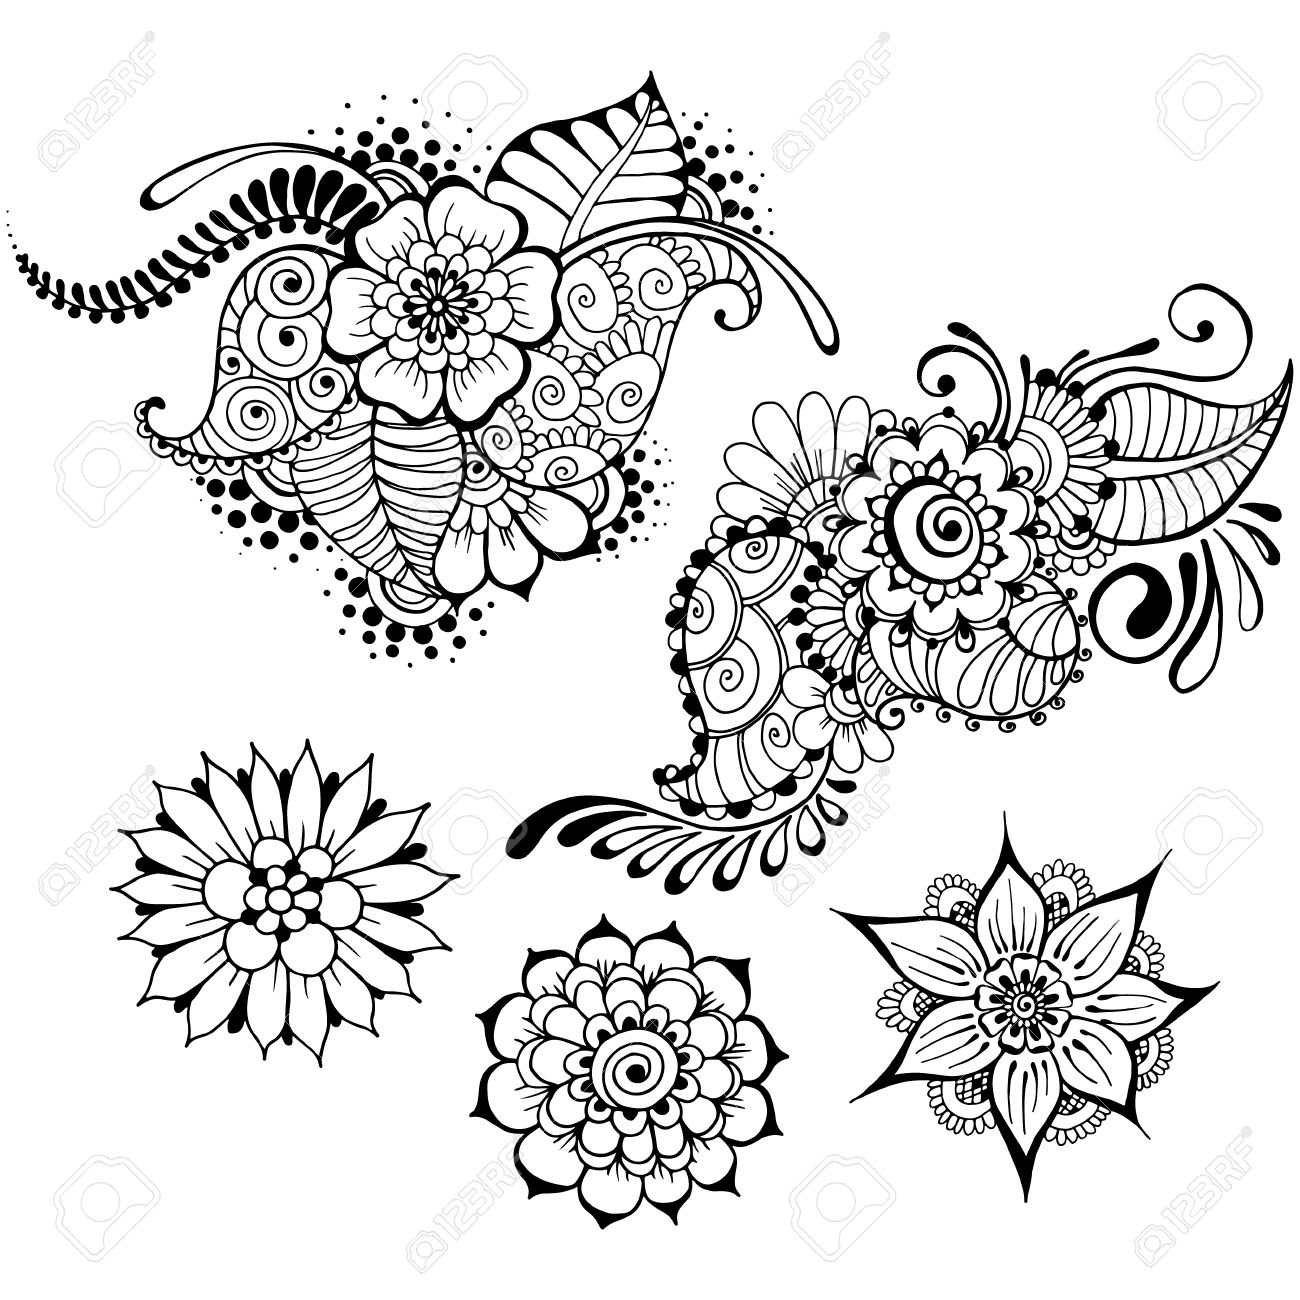 templates for tattoo design with mehndi elements floral ornament